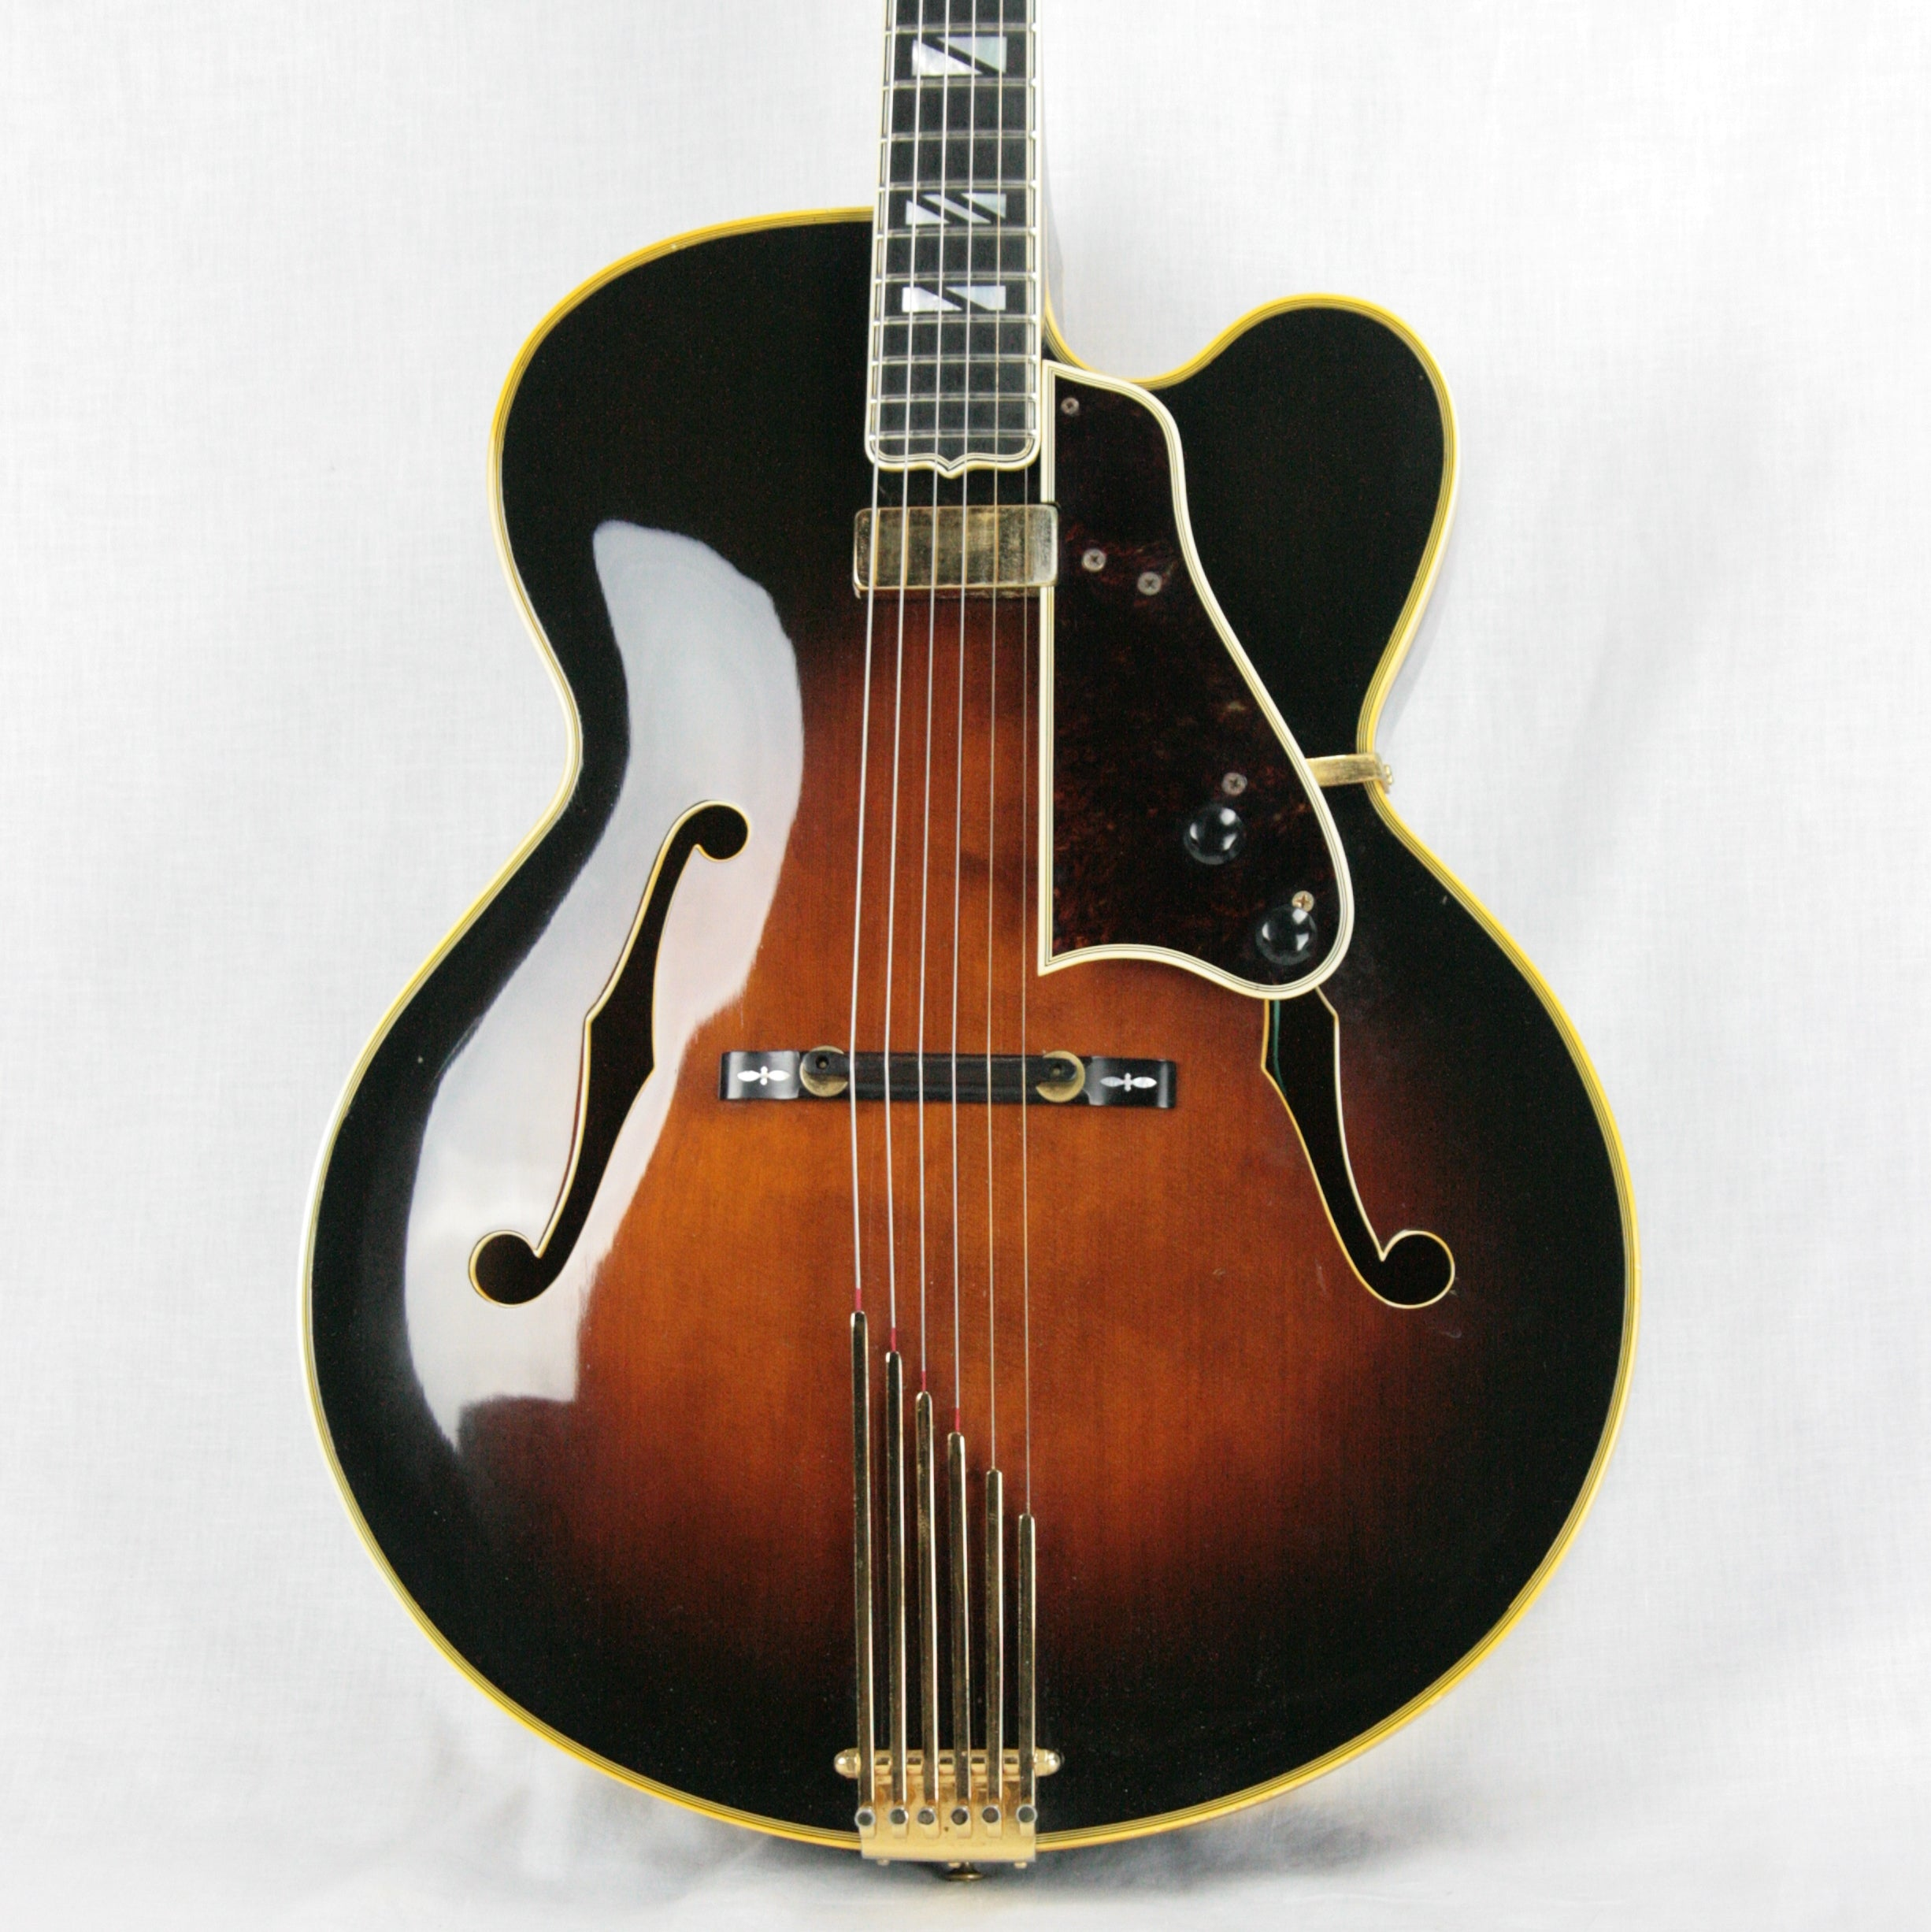 1979 Gibson Super V BJB Archtop Electric Guitar! L-5 400 Johnny Smith Floating Pickup